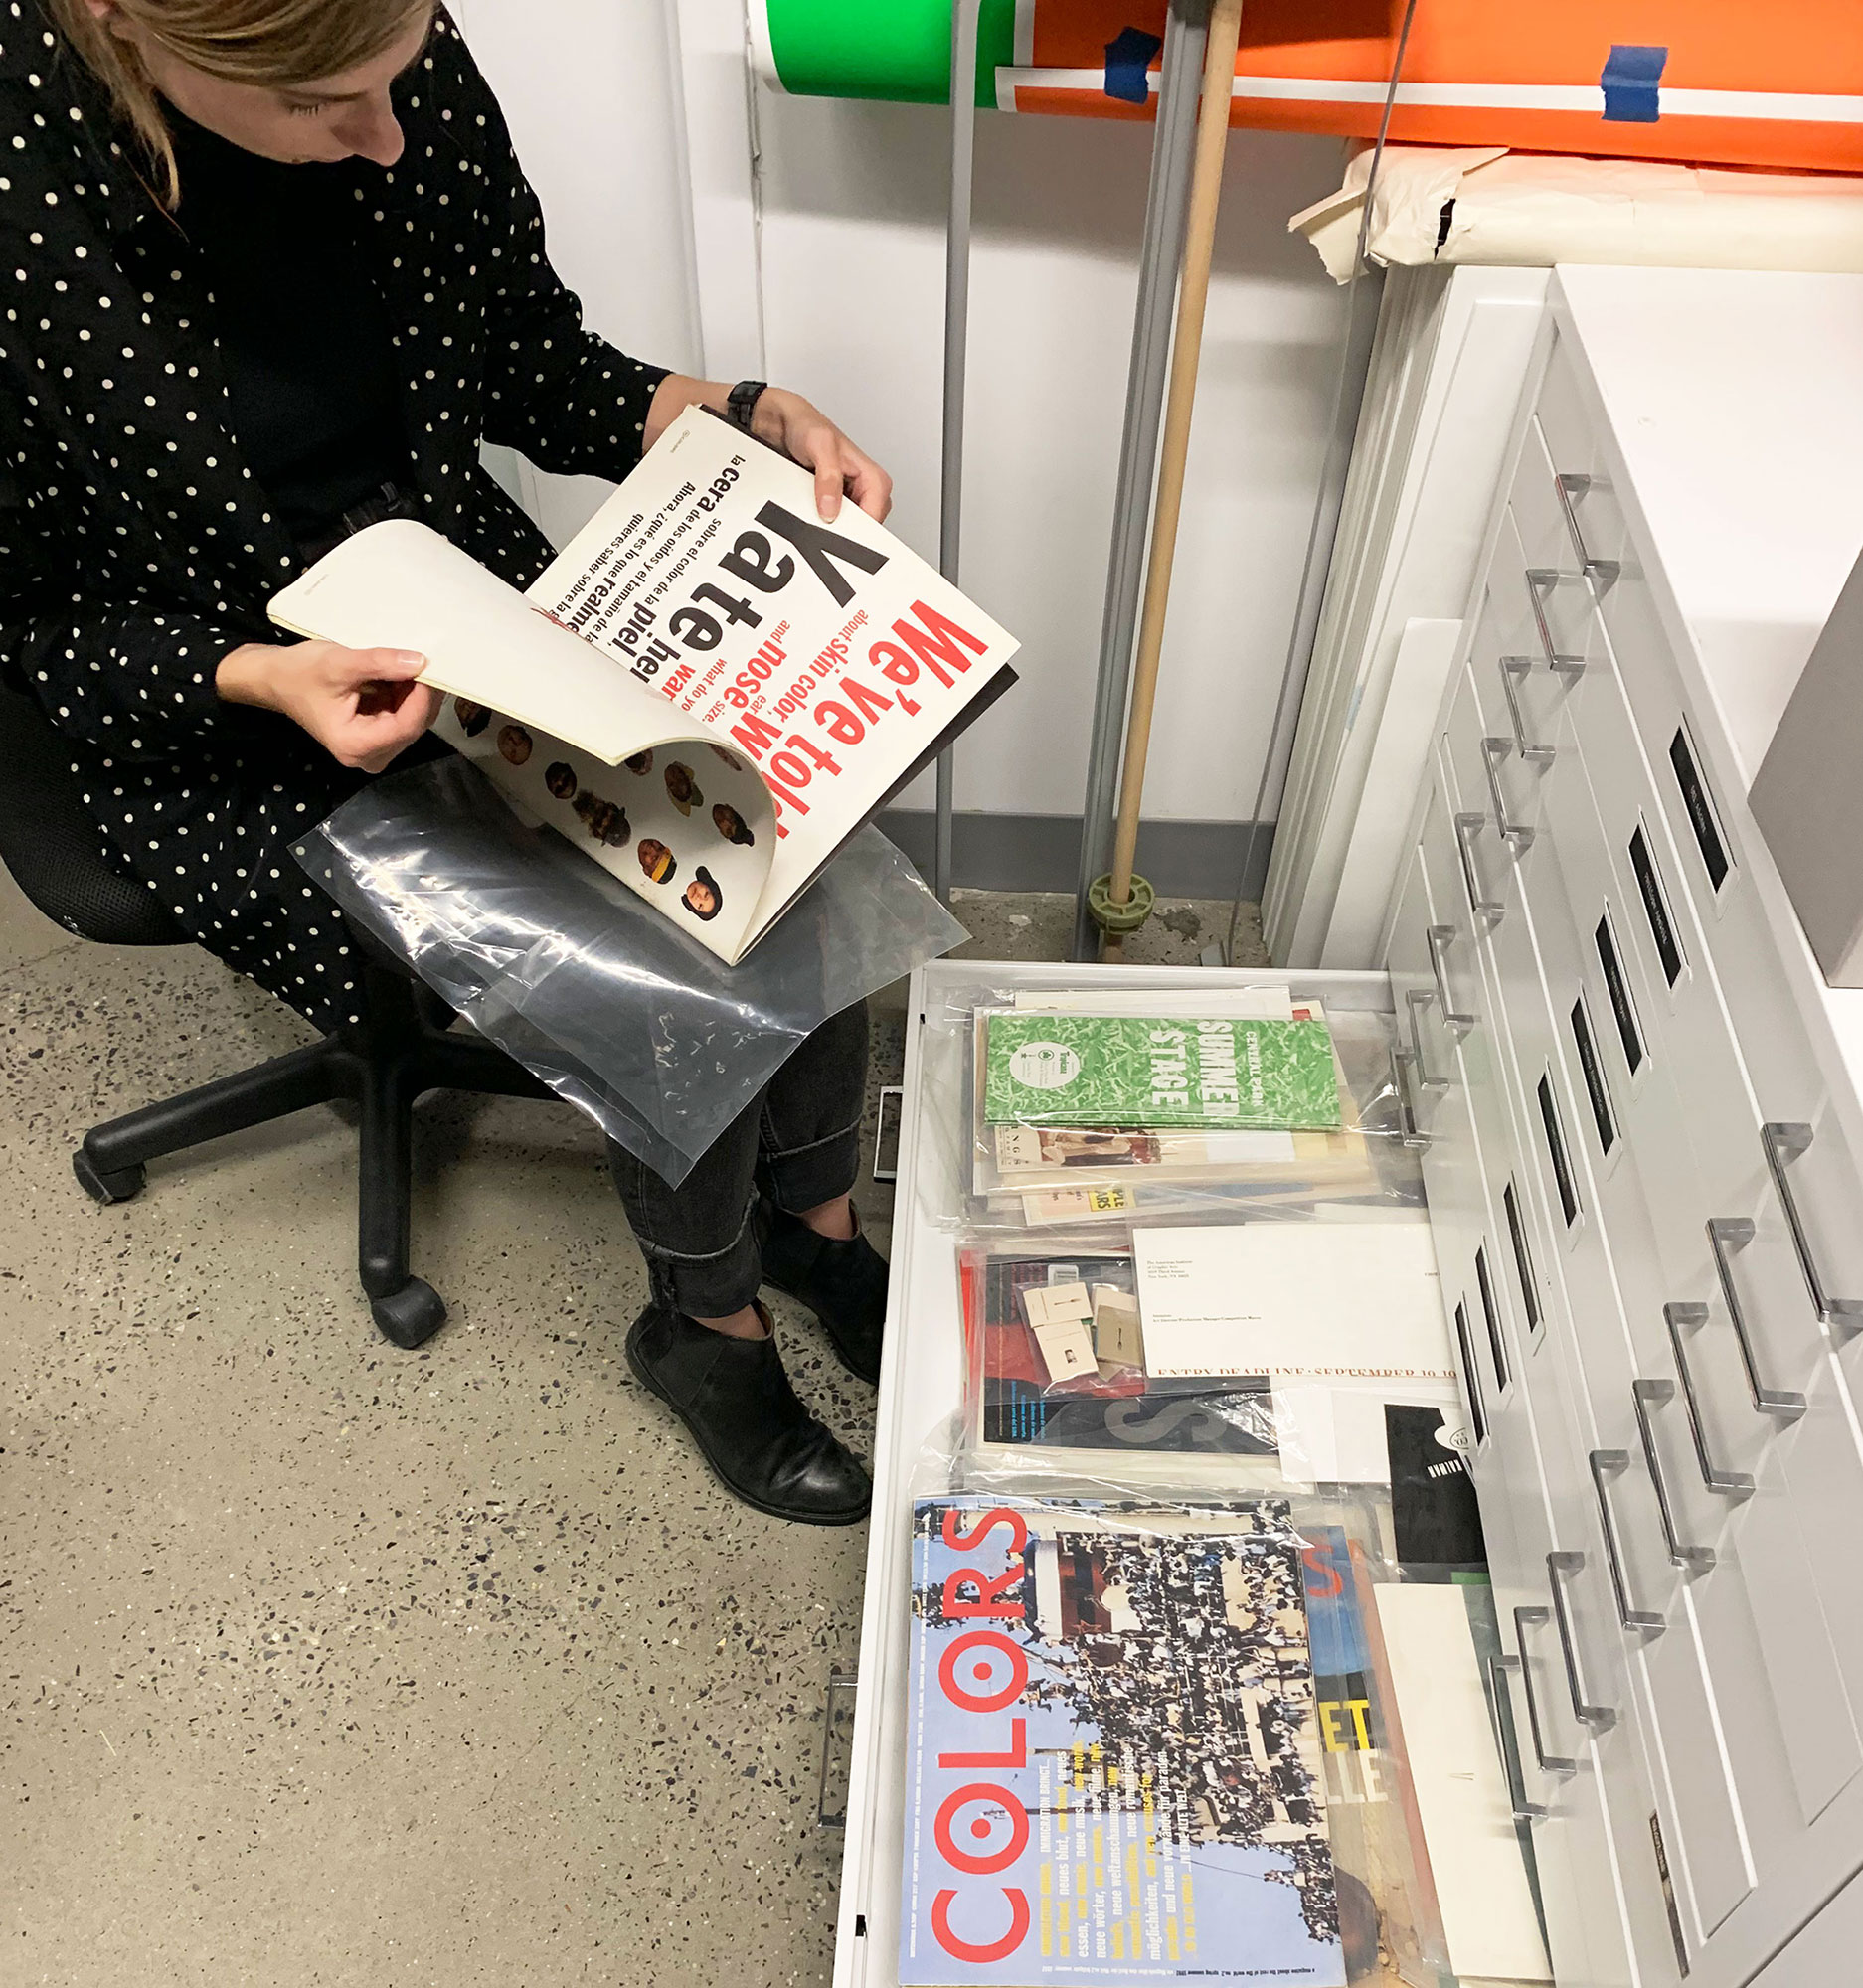 Annie Szafranski looking at magazines at the Herb Lubalin Study Center